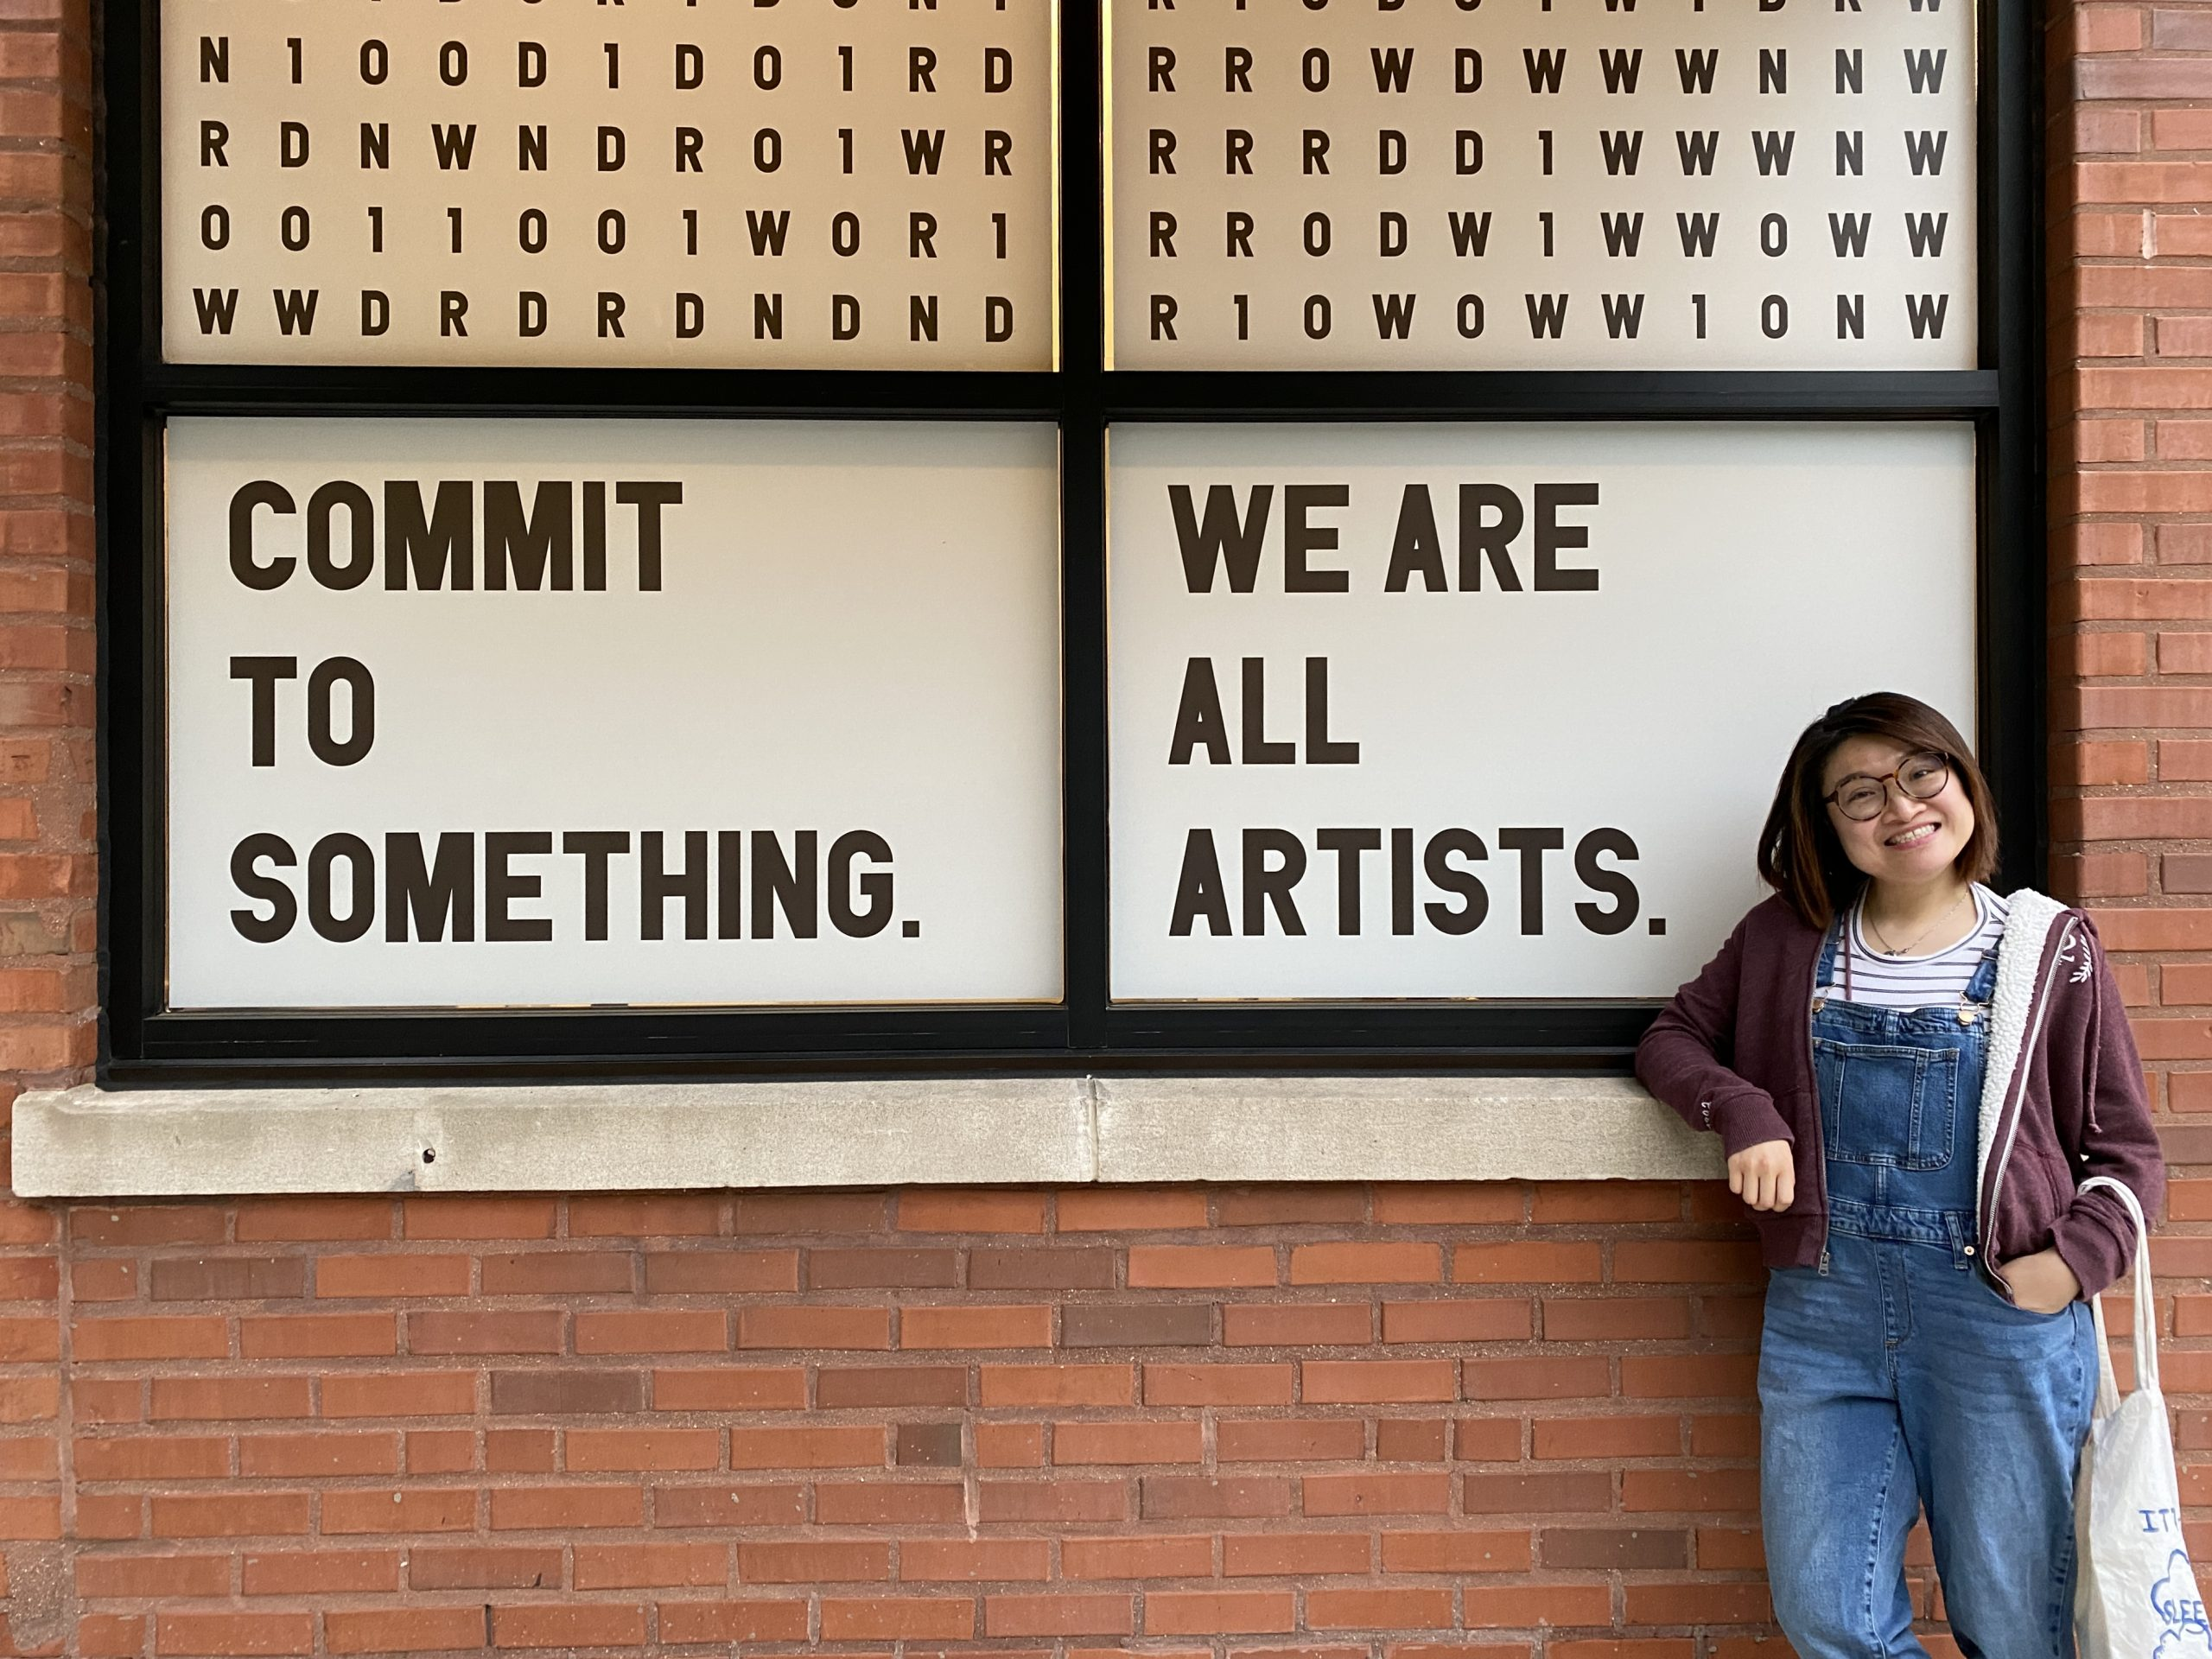 """Wenhao standing in front of the WNDR museum in Chicago. Windows behind her have signs saying """"Commit to something. We are all artists."""""""